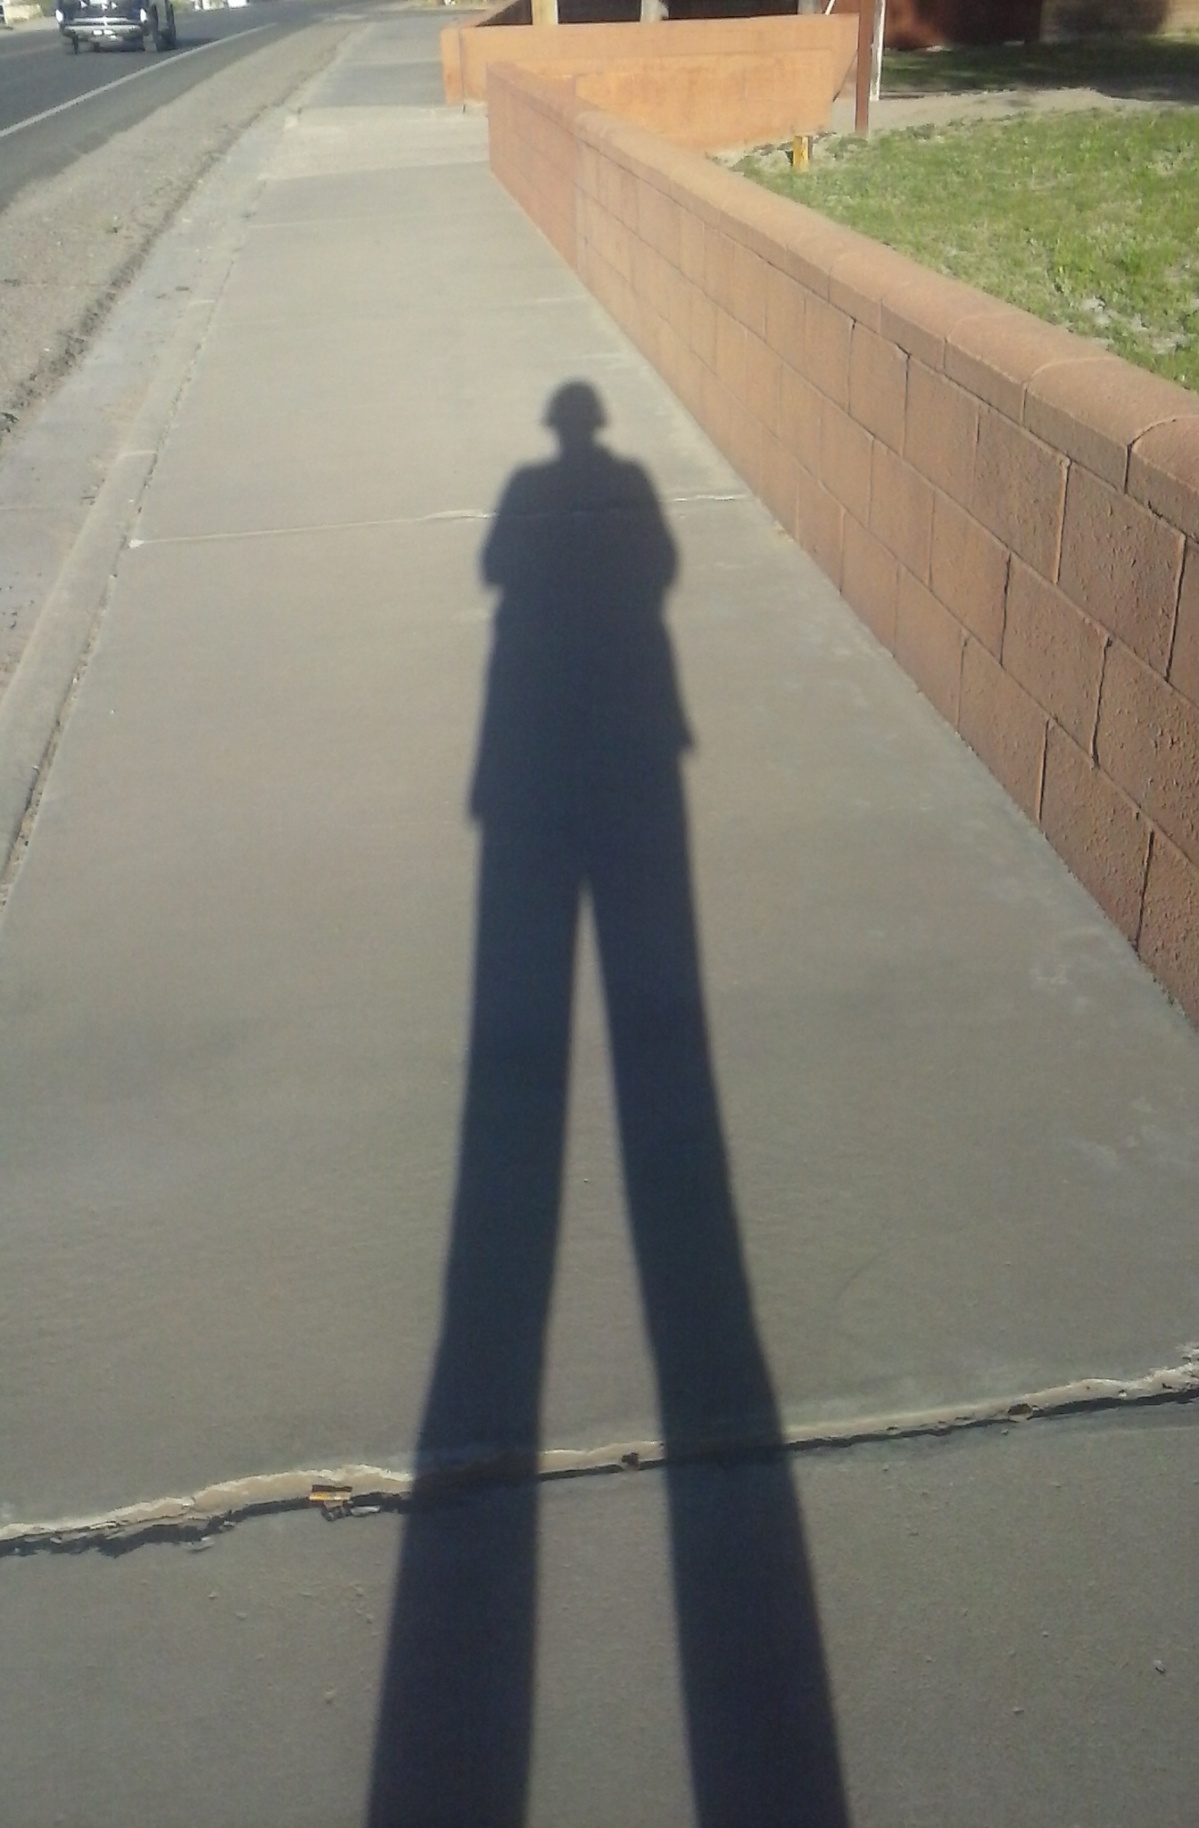 Dancin' with my shadow